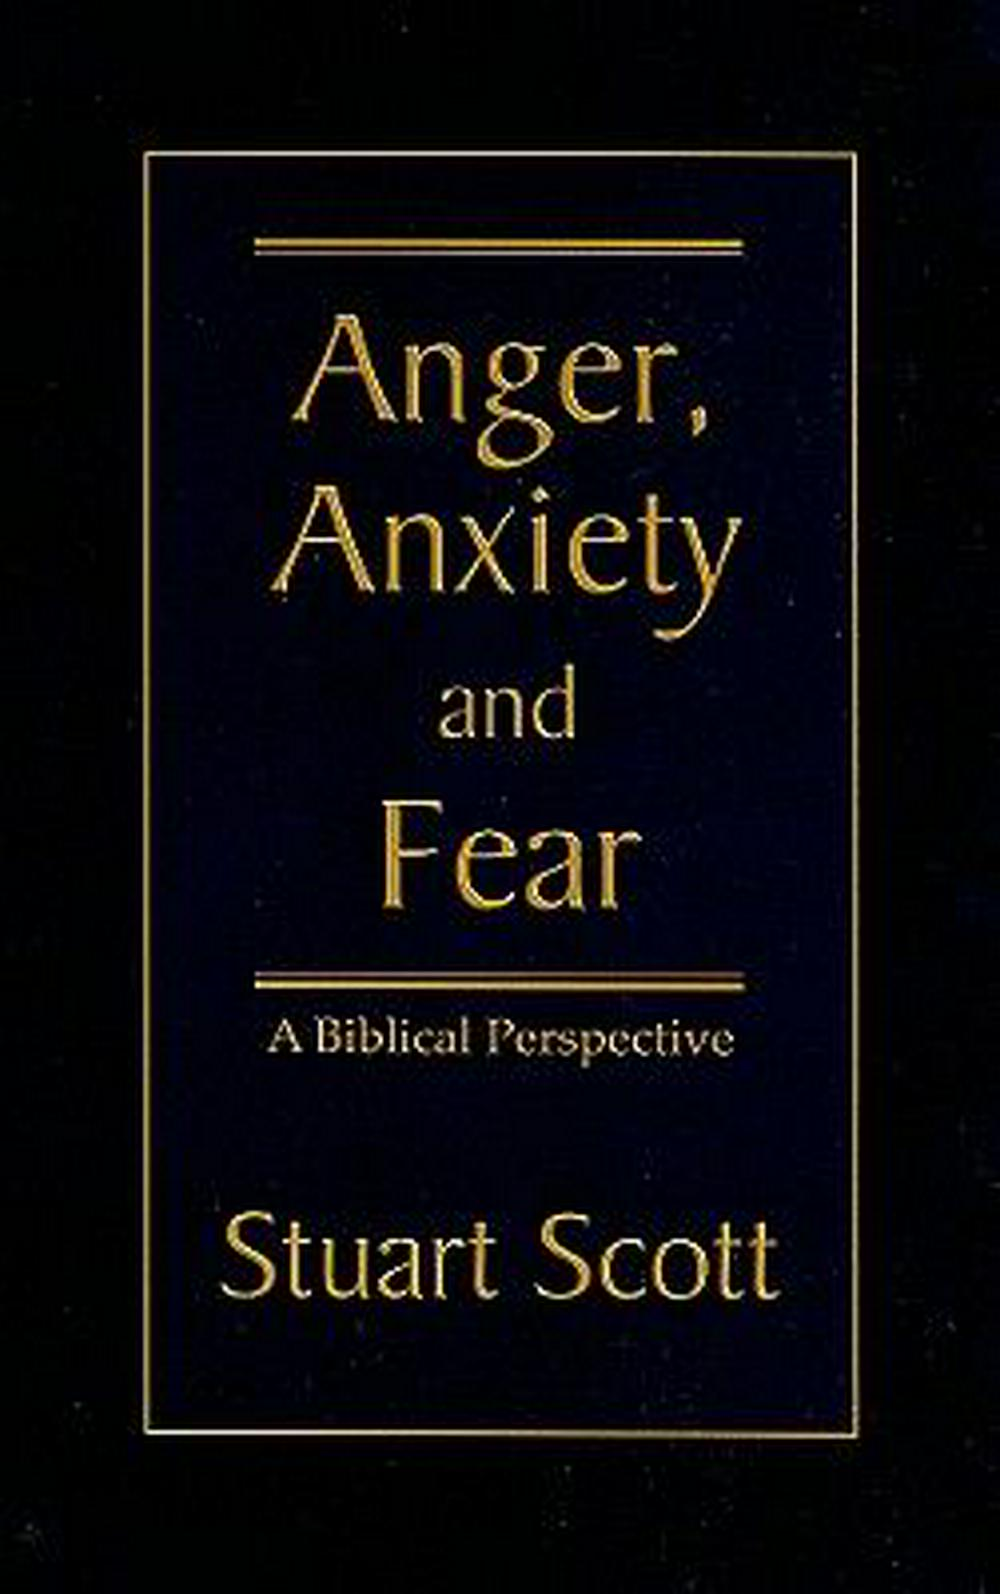 Anger, Anxiety and Fear: A Biblical Perspective by Stuart Scott, ISBN: 9781885904768